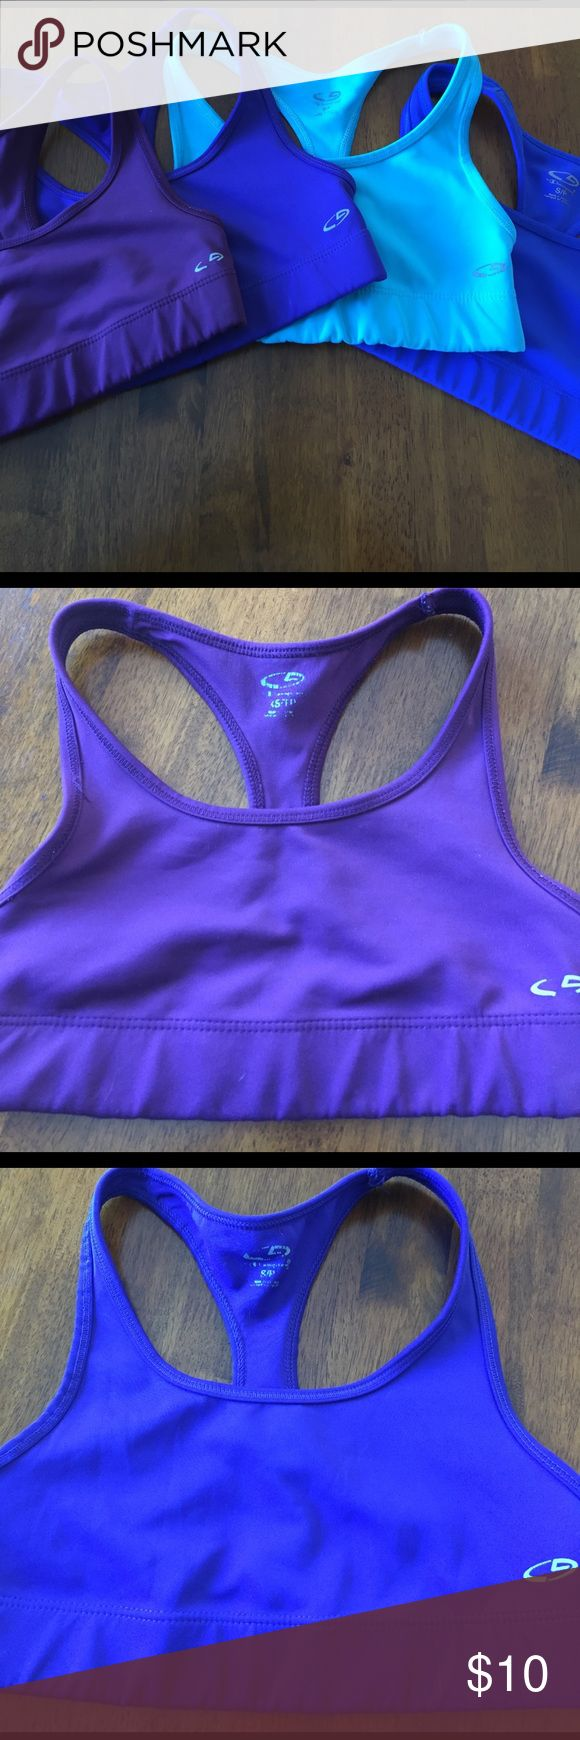 Set of 4 Champion sports bras Set of 4 Champion sports bras. 2 shades of purple and 2 shades of blue. No rips or stains. Gently worn. 3 are size small and one is an extra Small. Champion Other